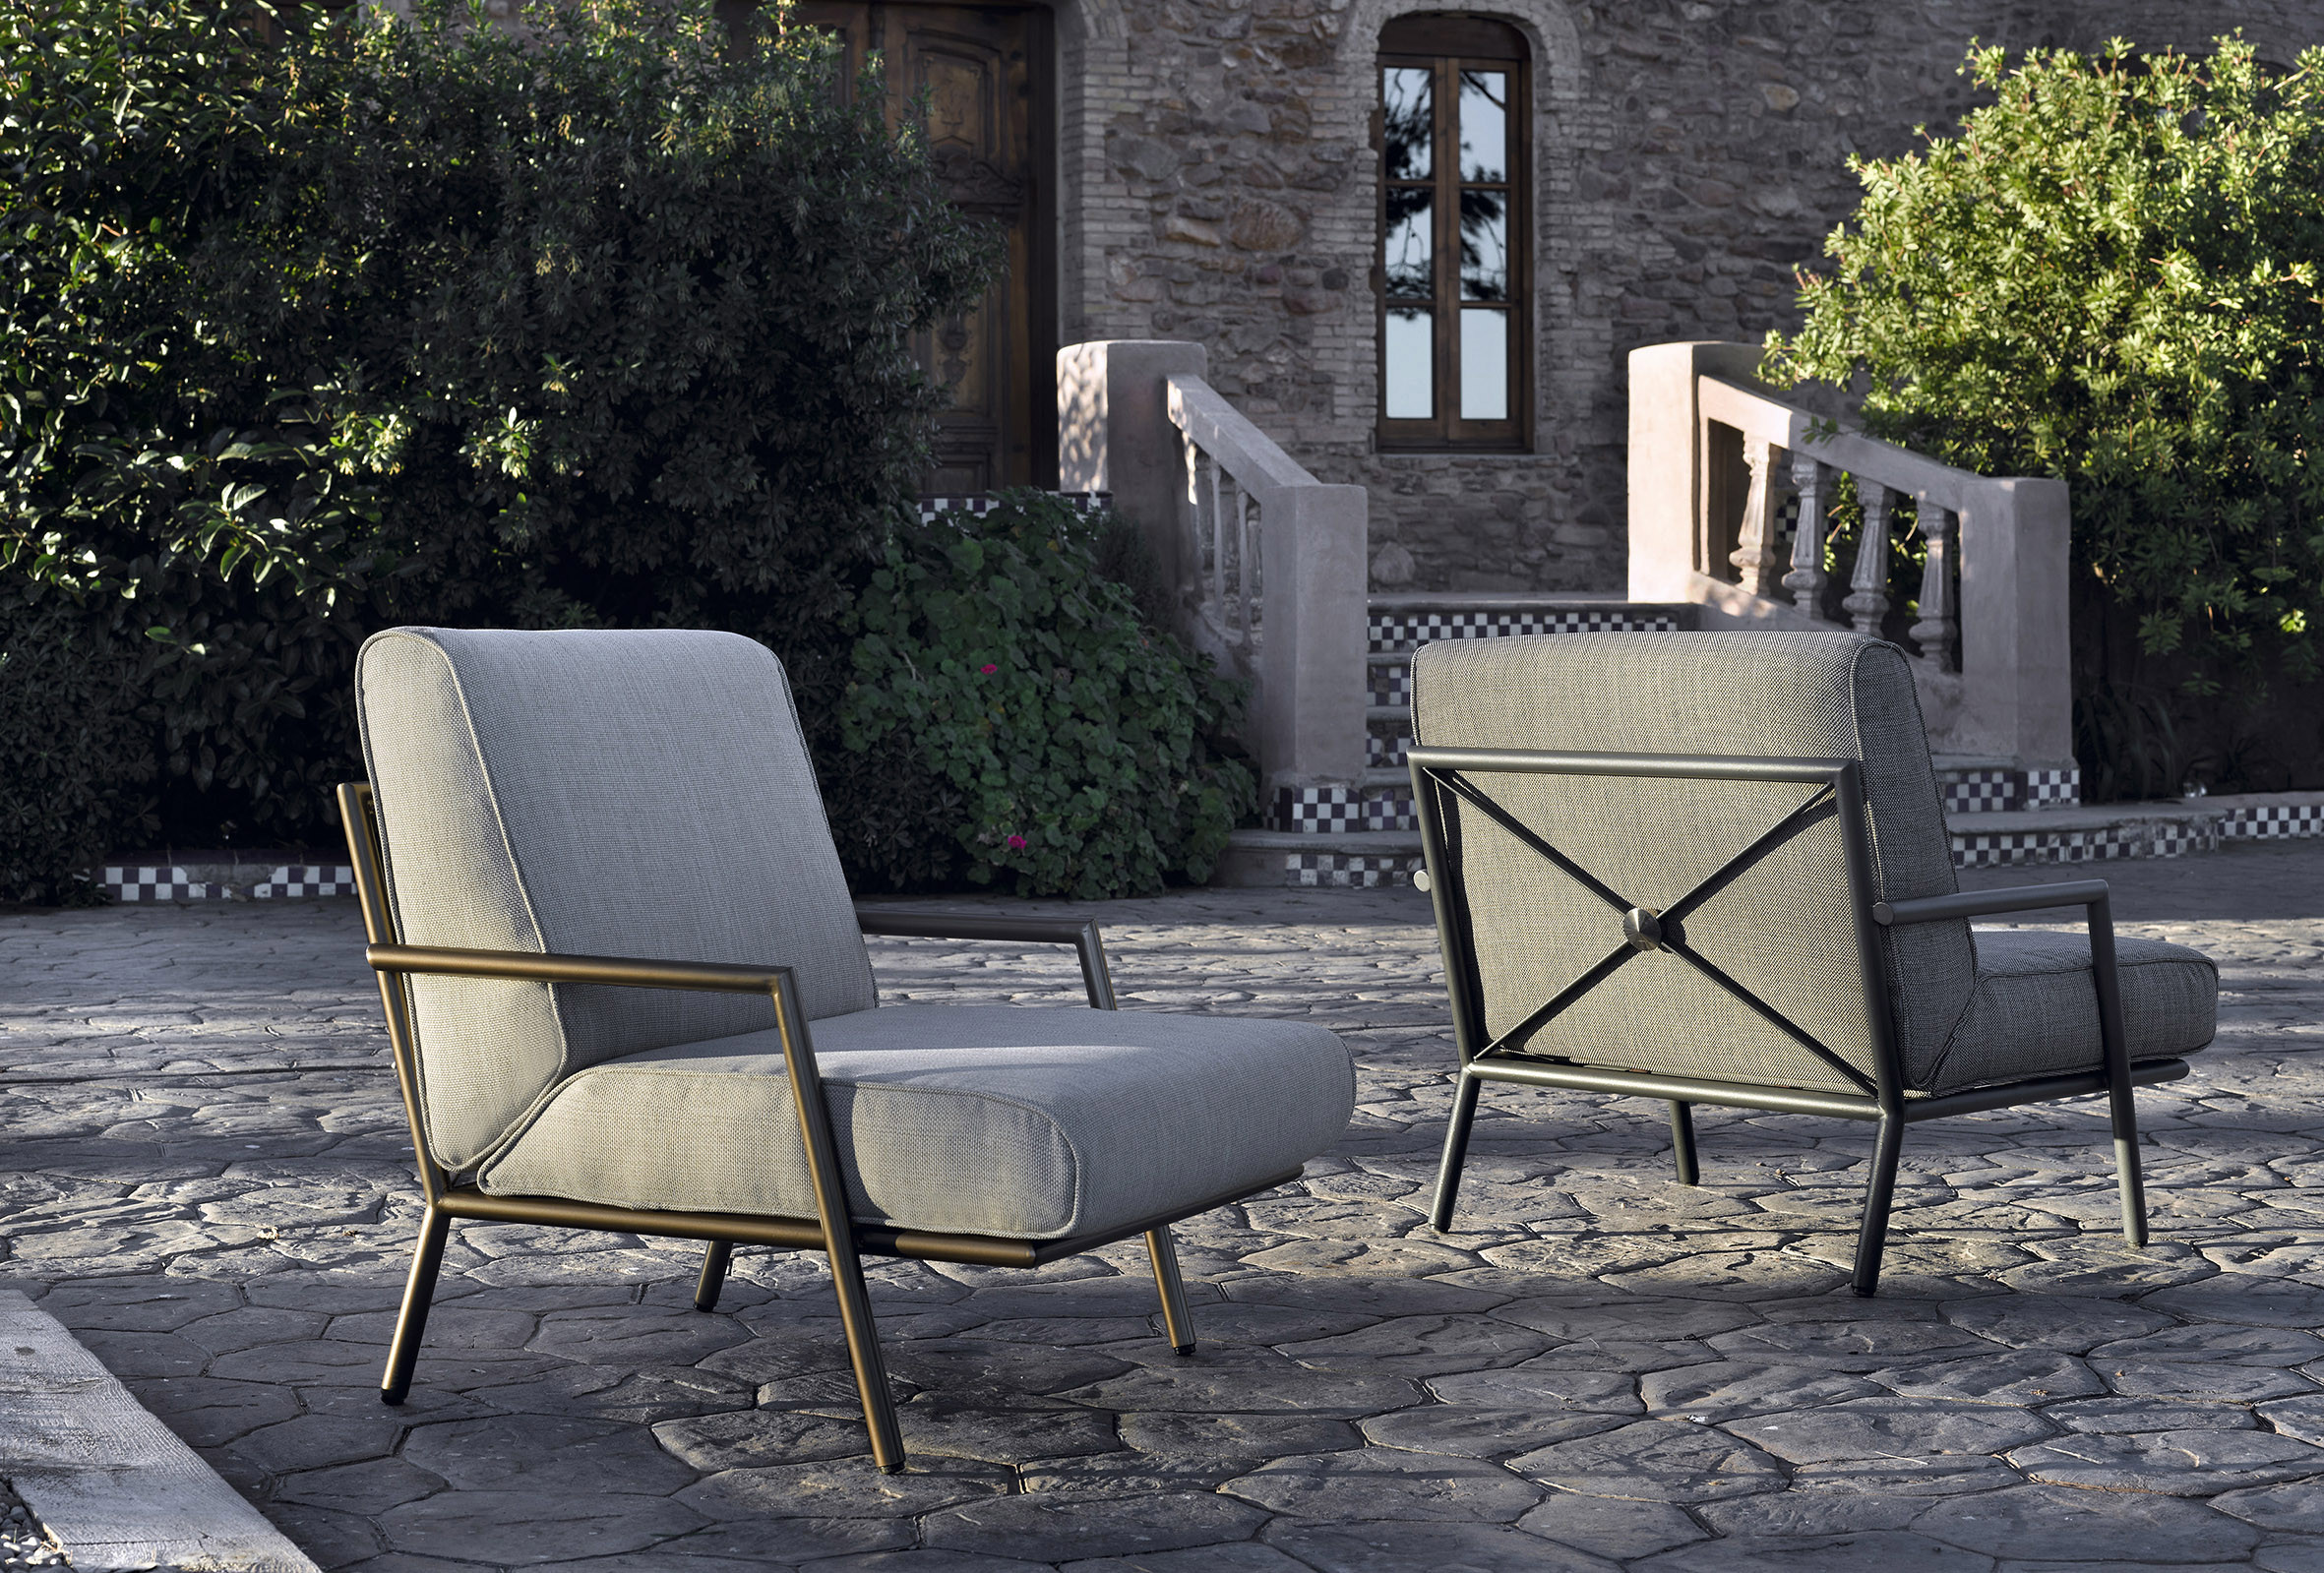 Best ideas about At Home Patio Furniture . Save or Pin luxury garden furniture patio furniture Now.